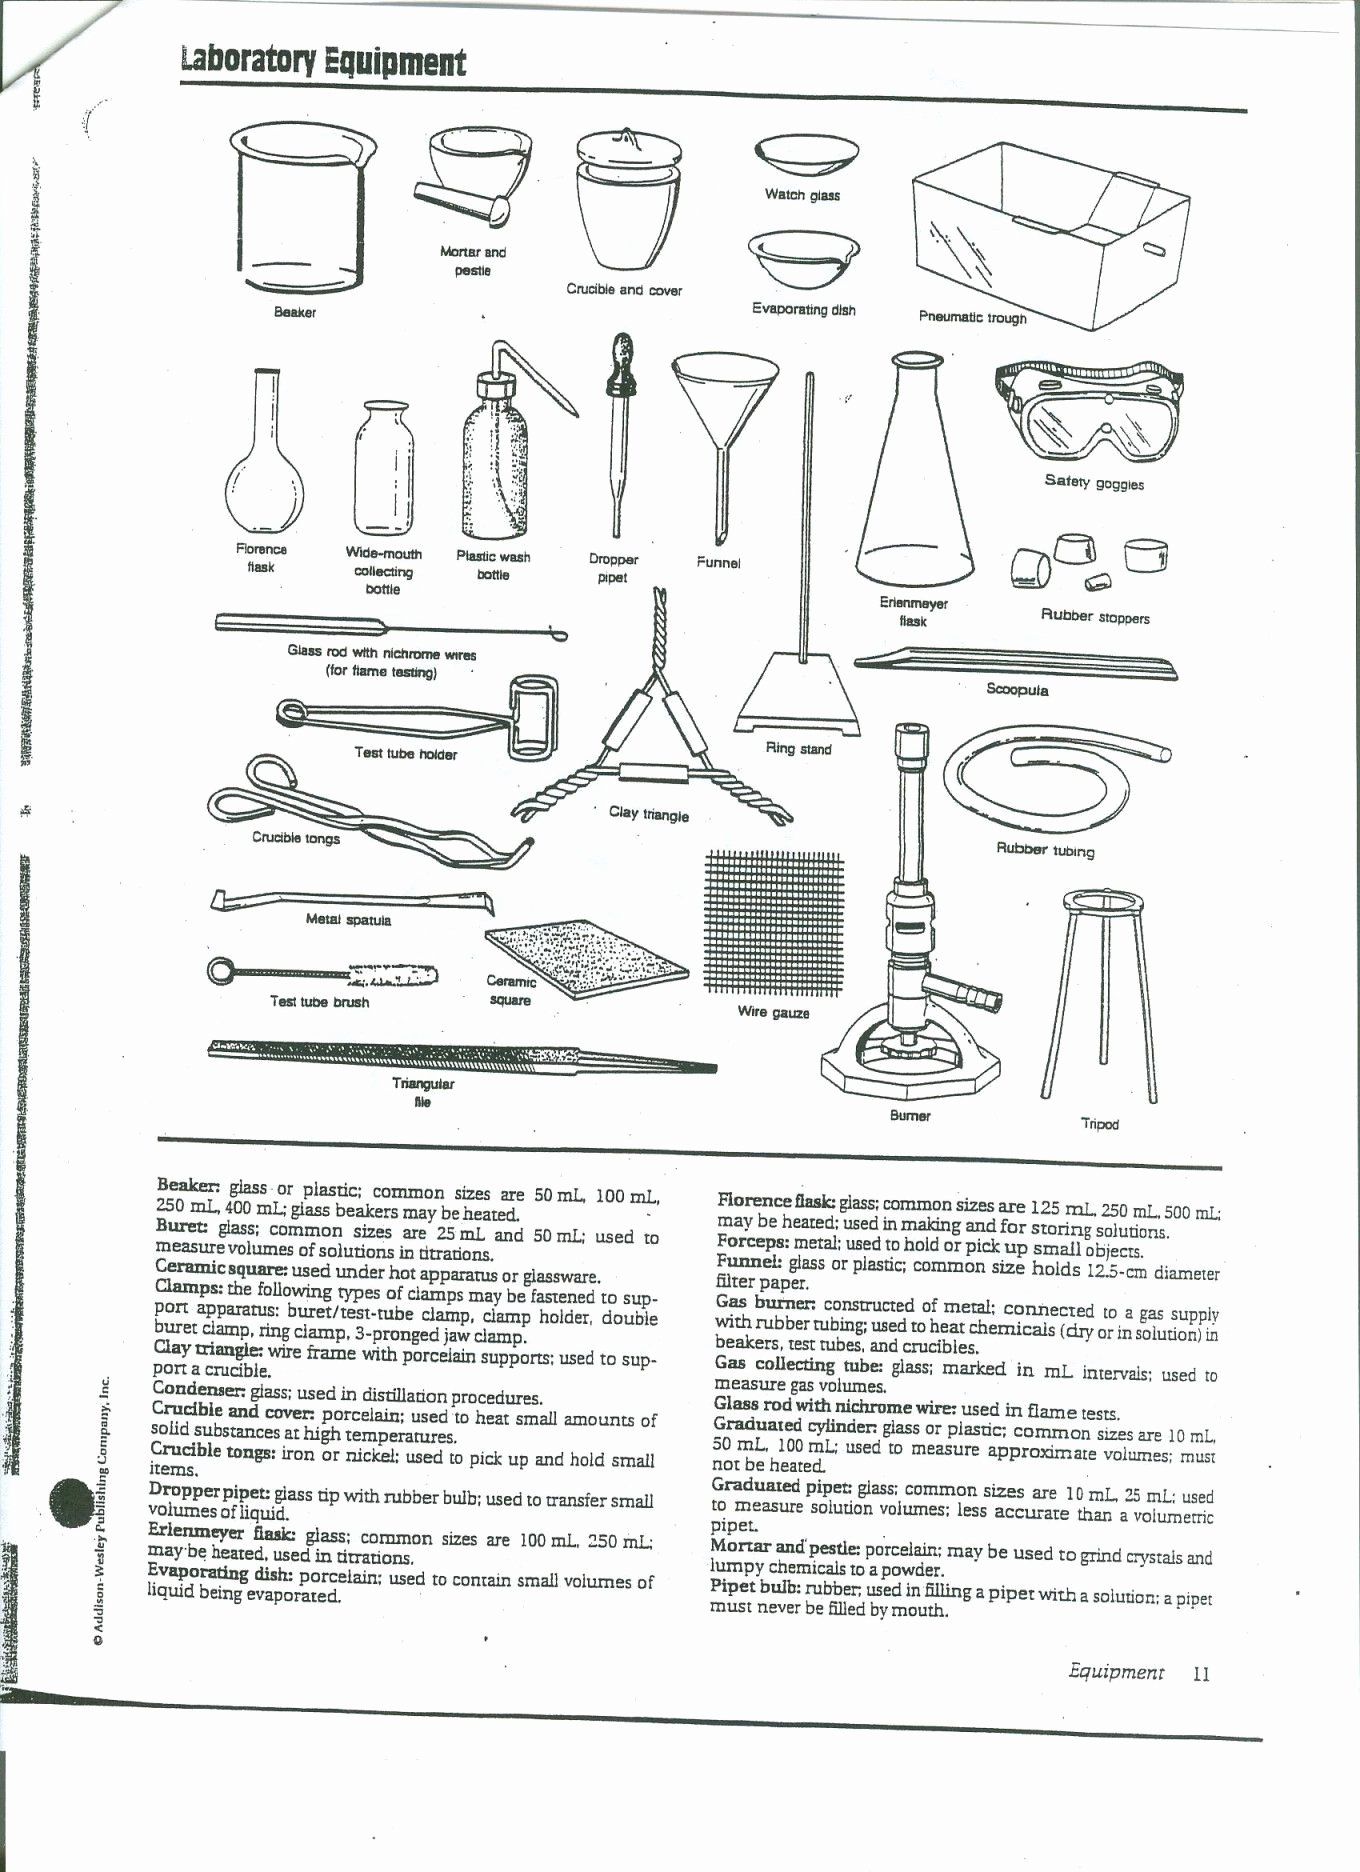 Lab Equipment Worksheet Answer Key New Laboratory Apparatus Worksheet Answers